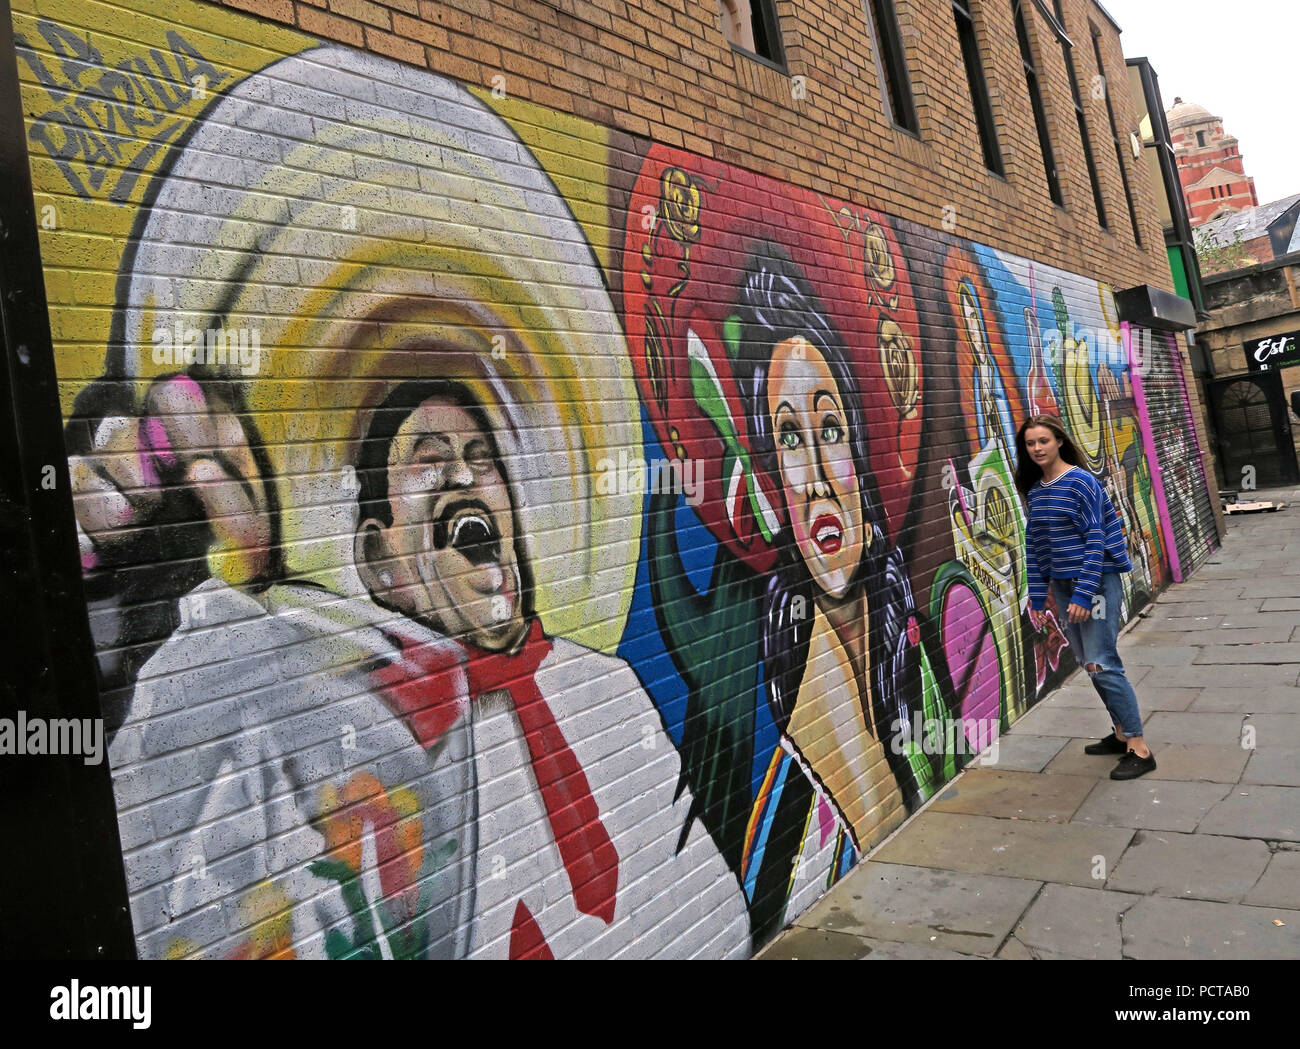 Mexican La Parrilla artwork mural on wall, Bold St, Liverpool, Merseyside, North West England, UK Stock Photo